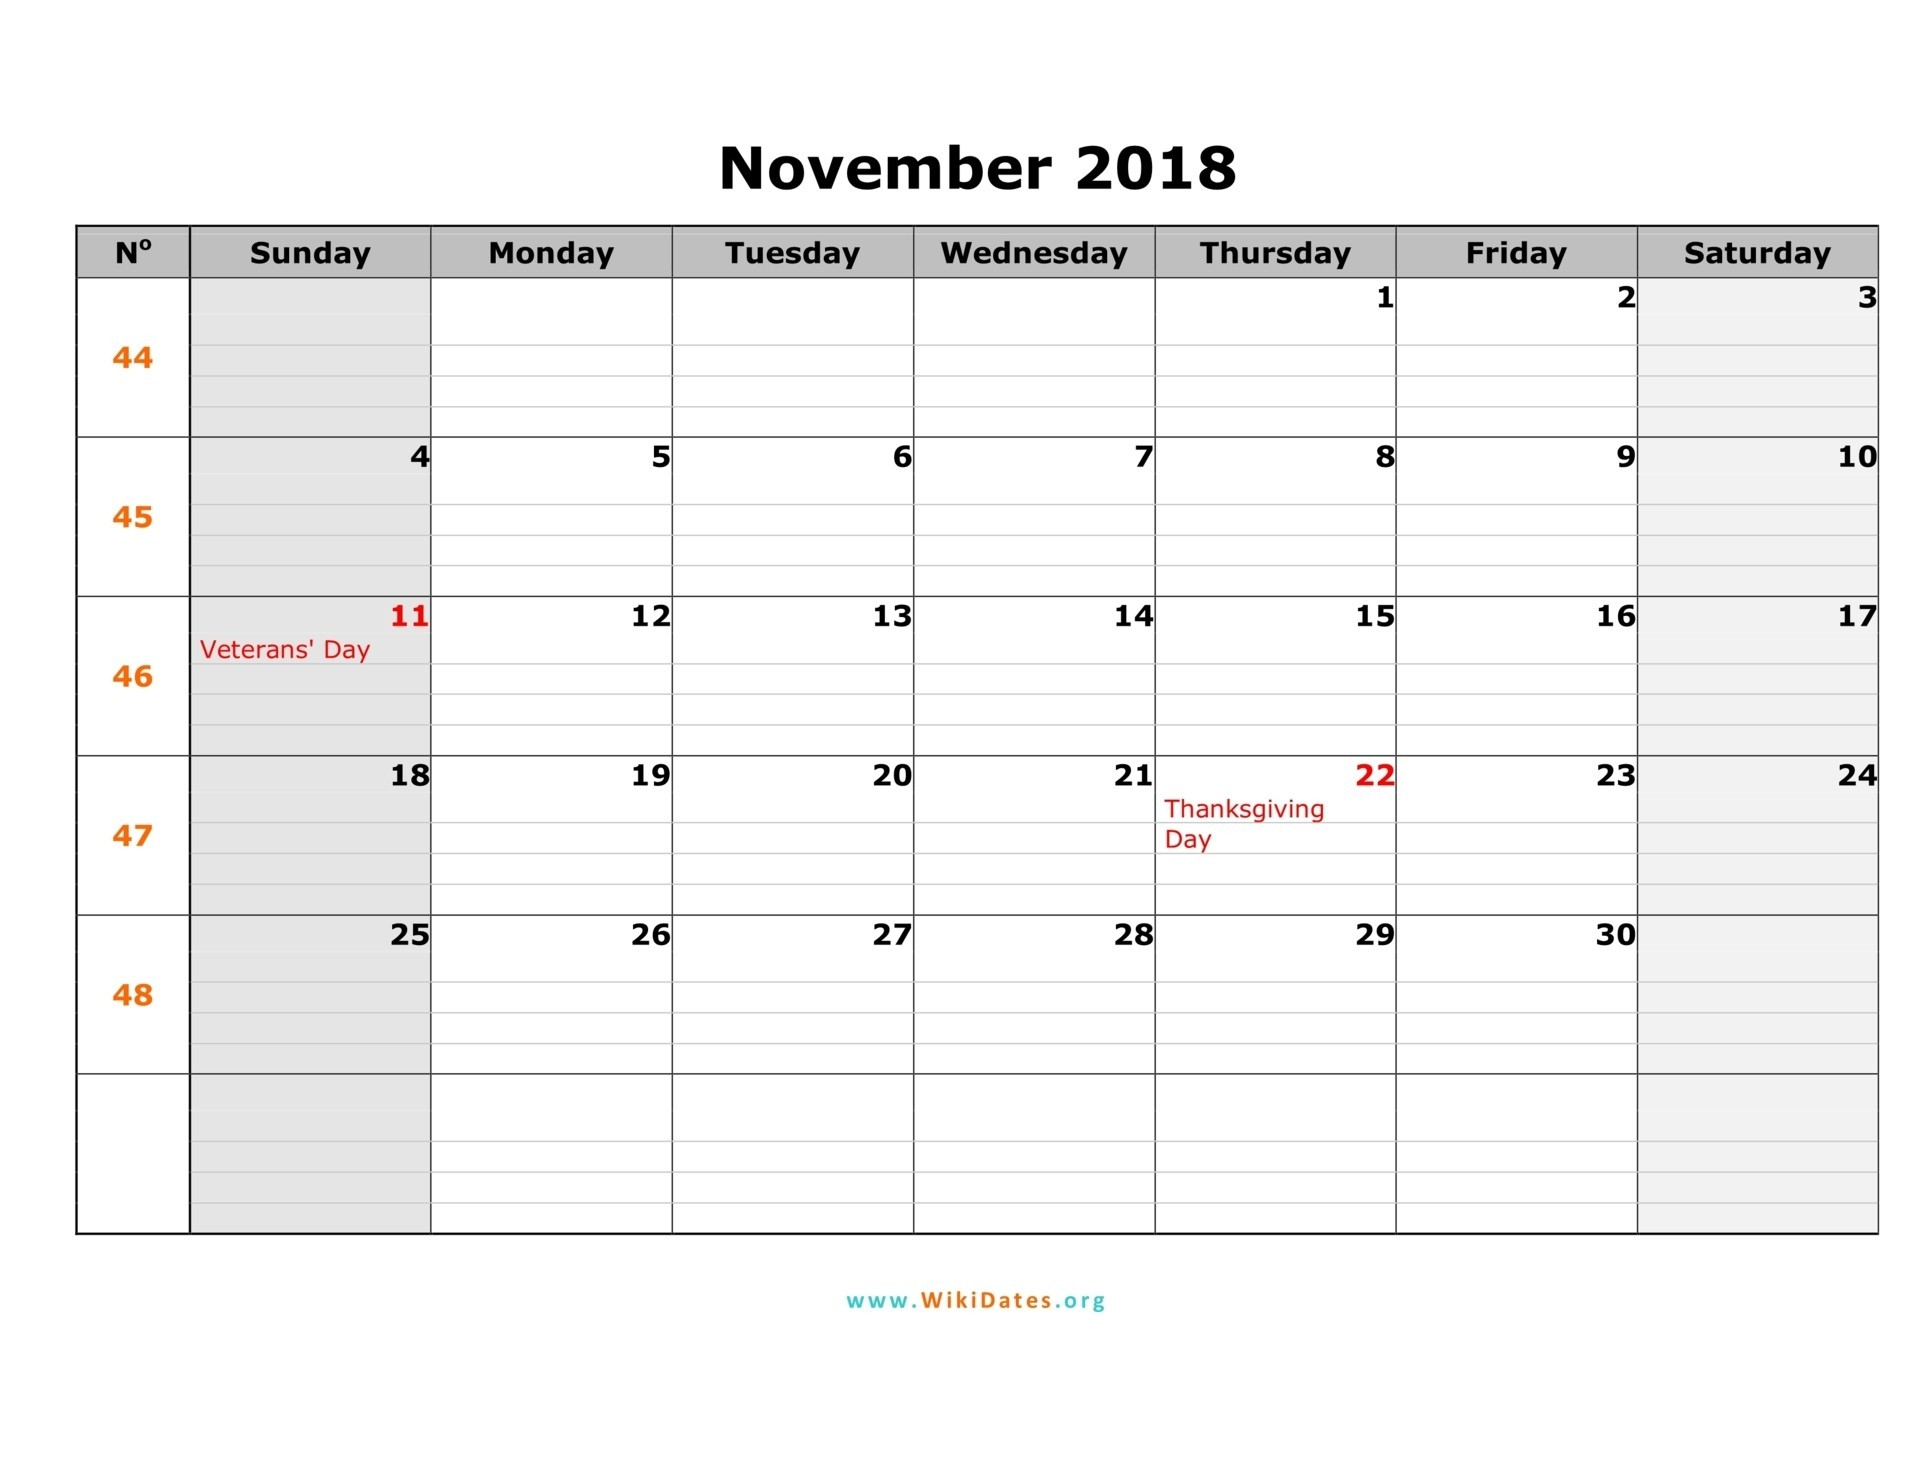 Calendario Febrero 2018 Editable Más Recientes Calendar Deals Uk November February 2018 Calendar Printable Of Calendario Febrero 2018 Editable Más Populares Pin by 4khd On August Month Calendar 2018